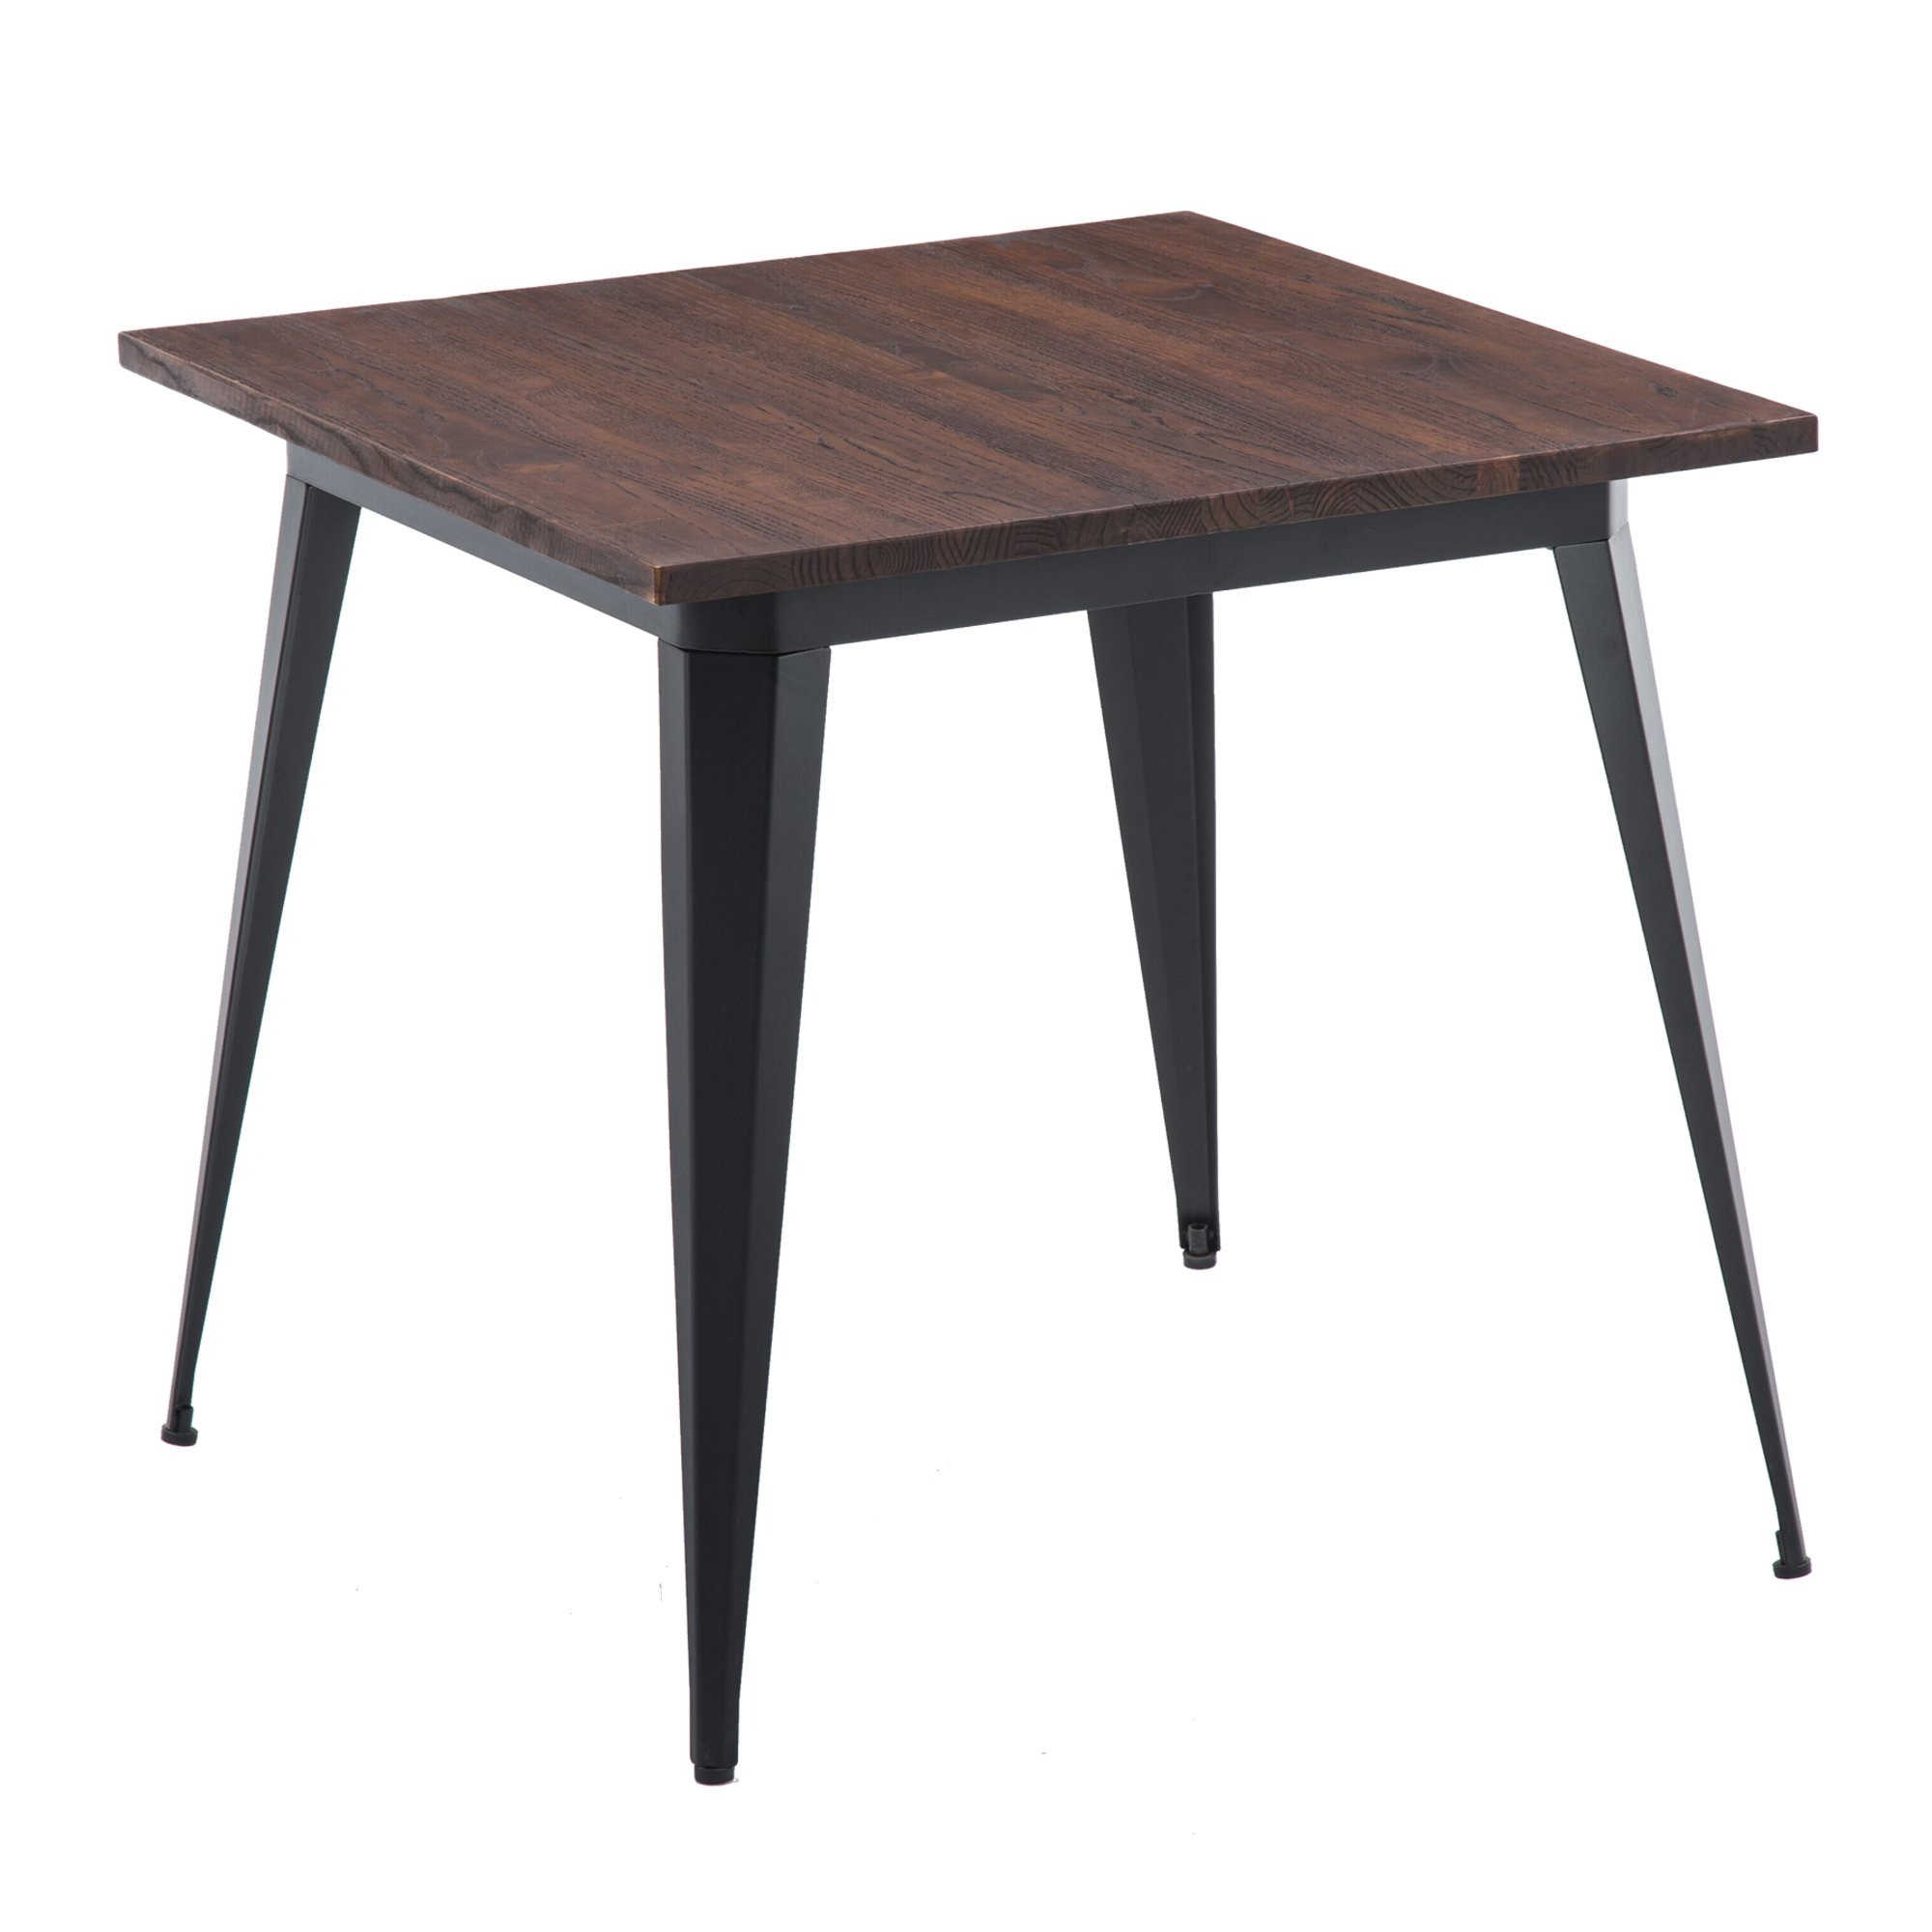 LSSBOUGHT Wood and Metal Square Dining Table, 31.5'' W×31.5'' L